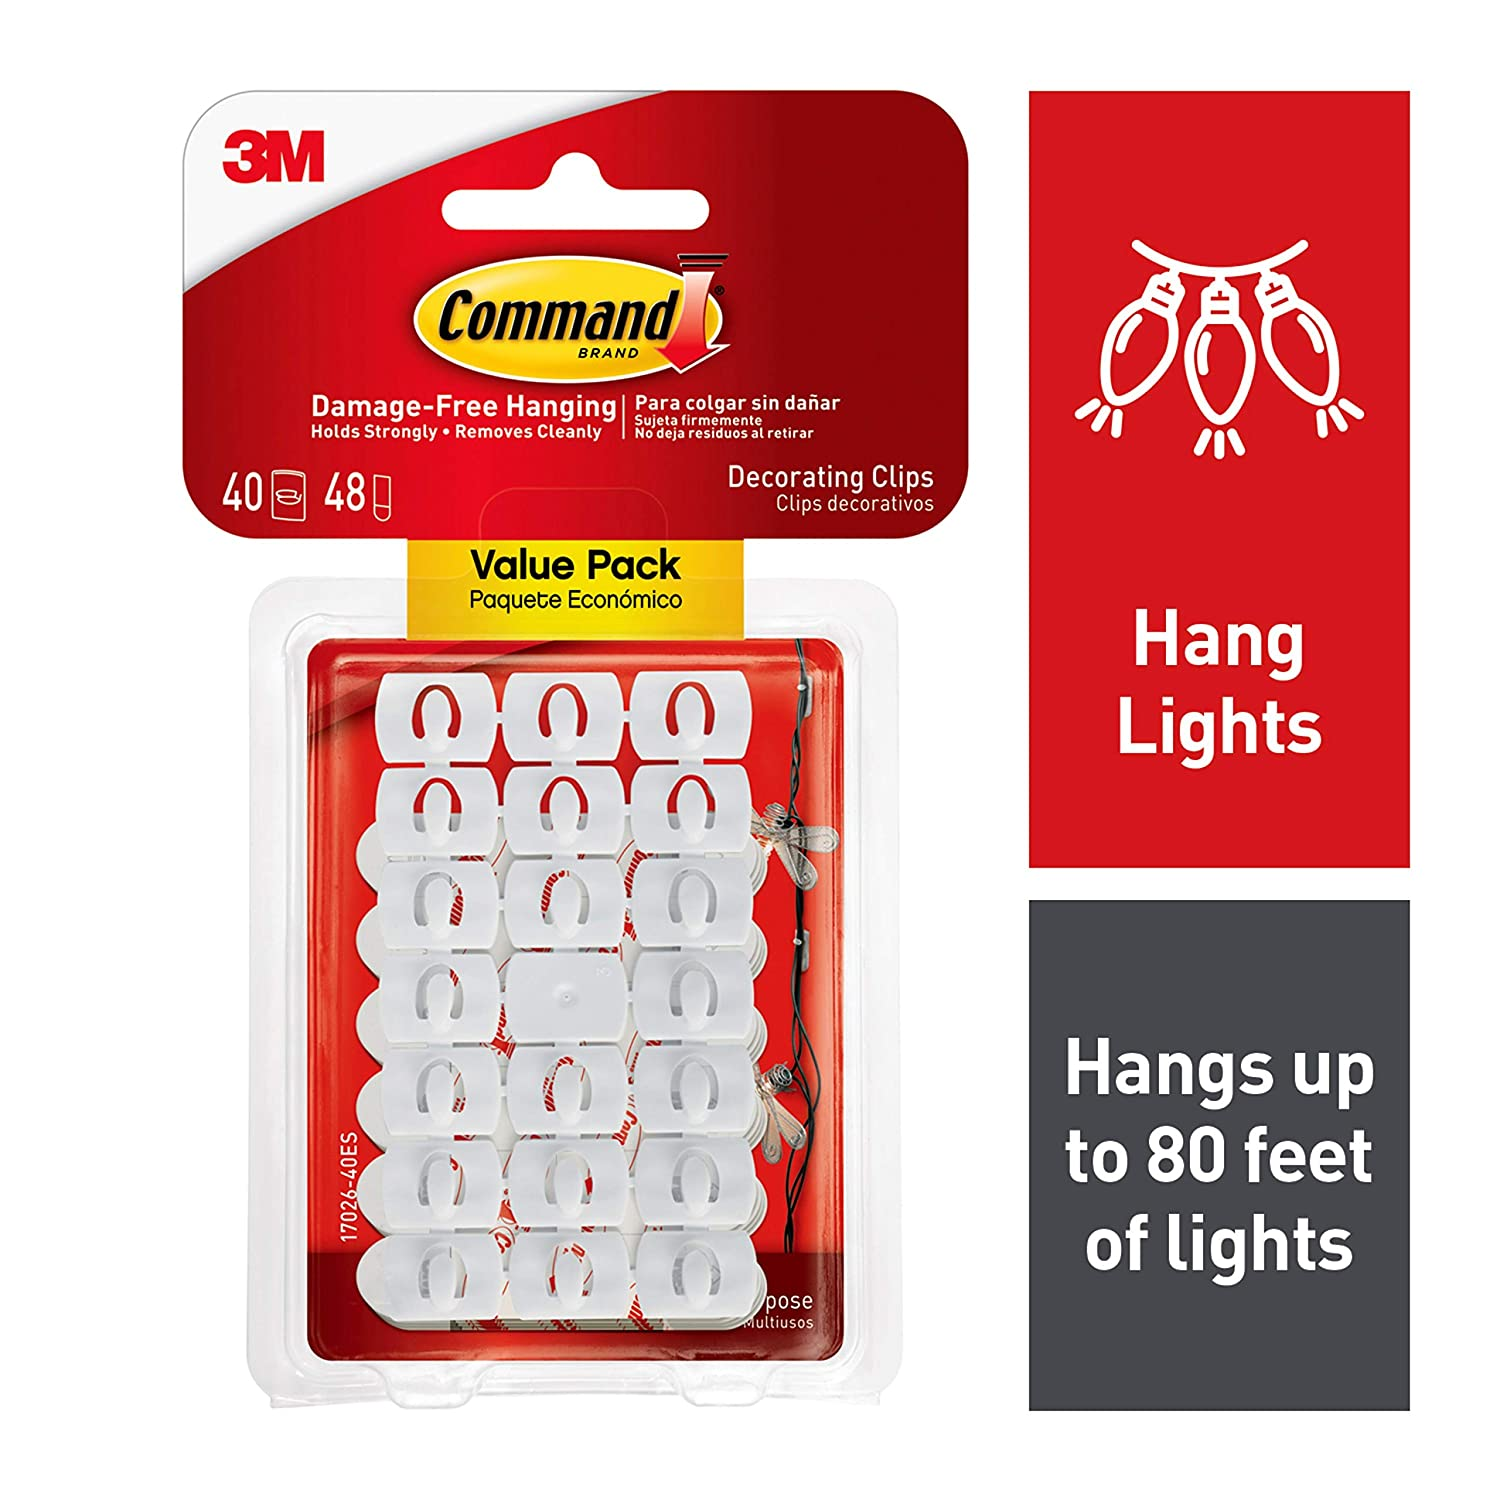 Command White Light Clips, Decorate Damage-Free (17026-40ES)